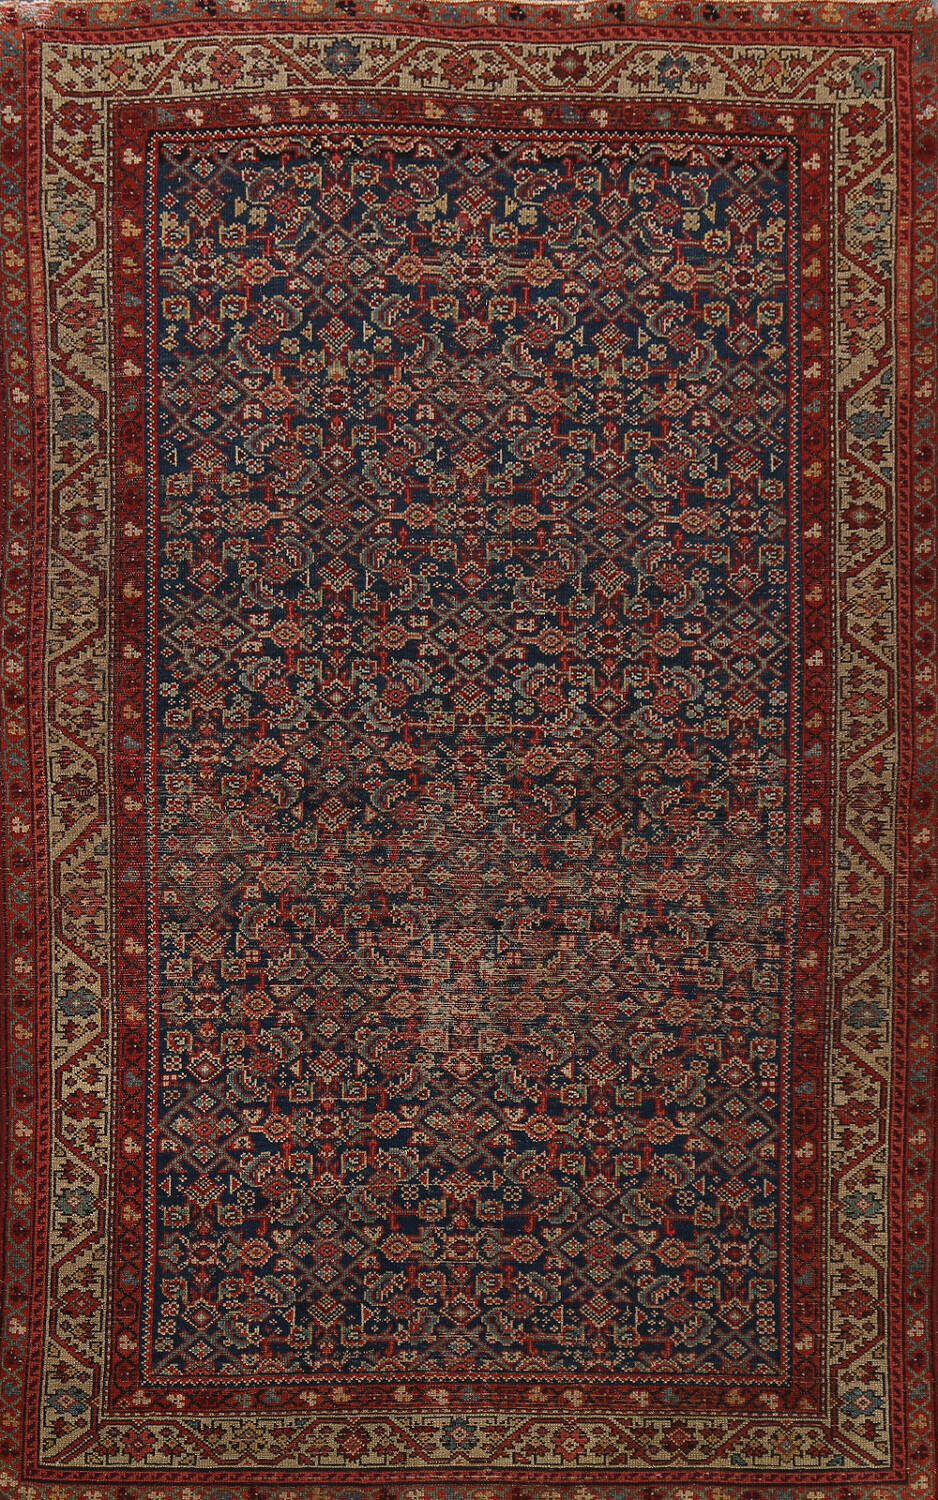 Pre-1900 Antique All-Over Malayer Persian Area Rug 4x6 image 1